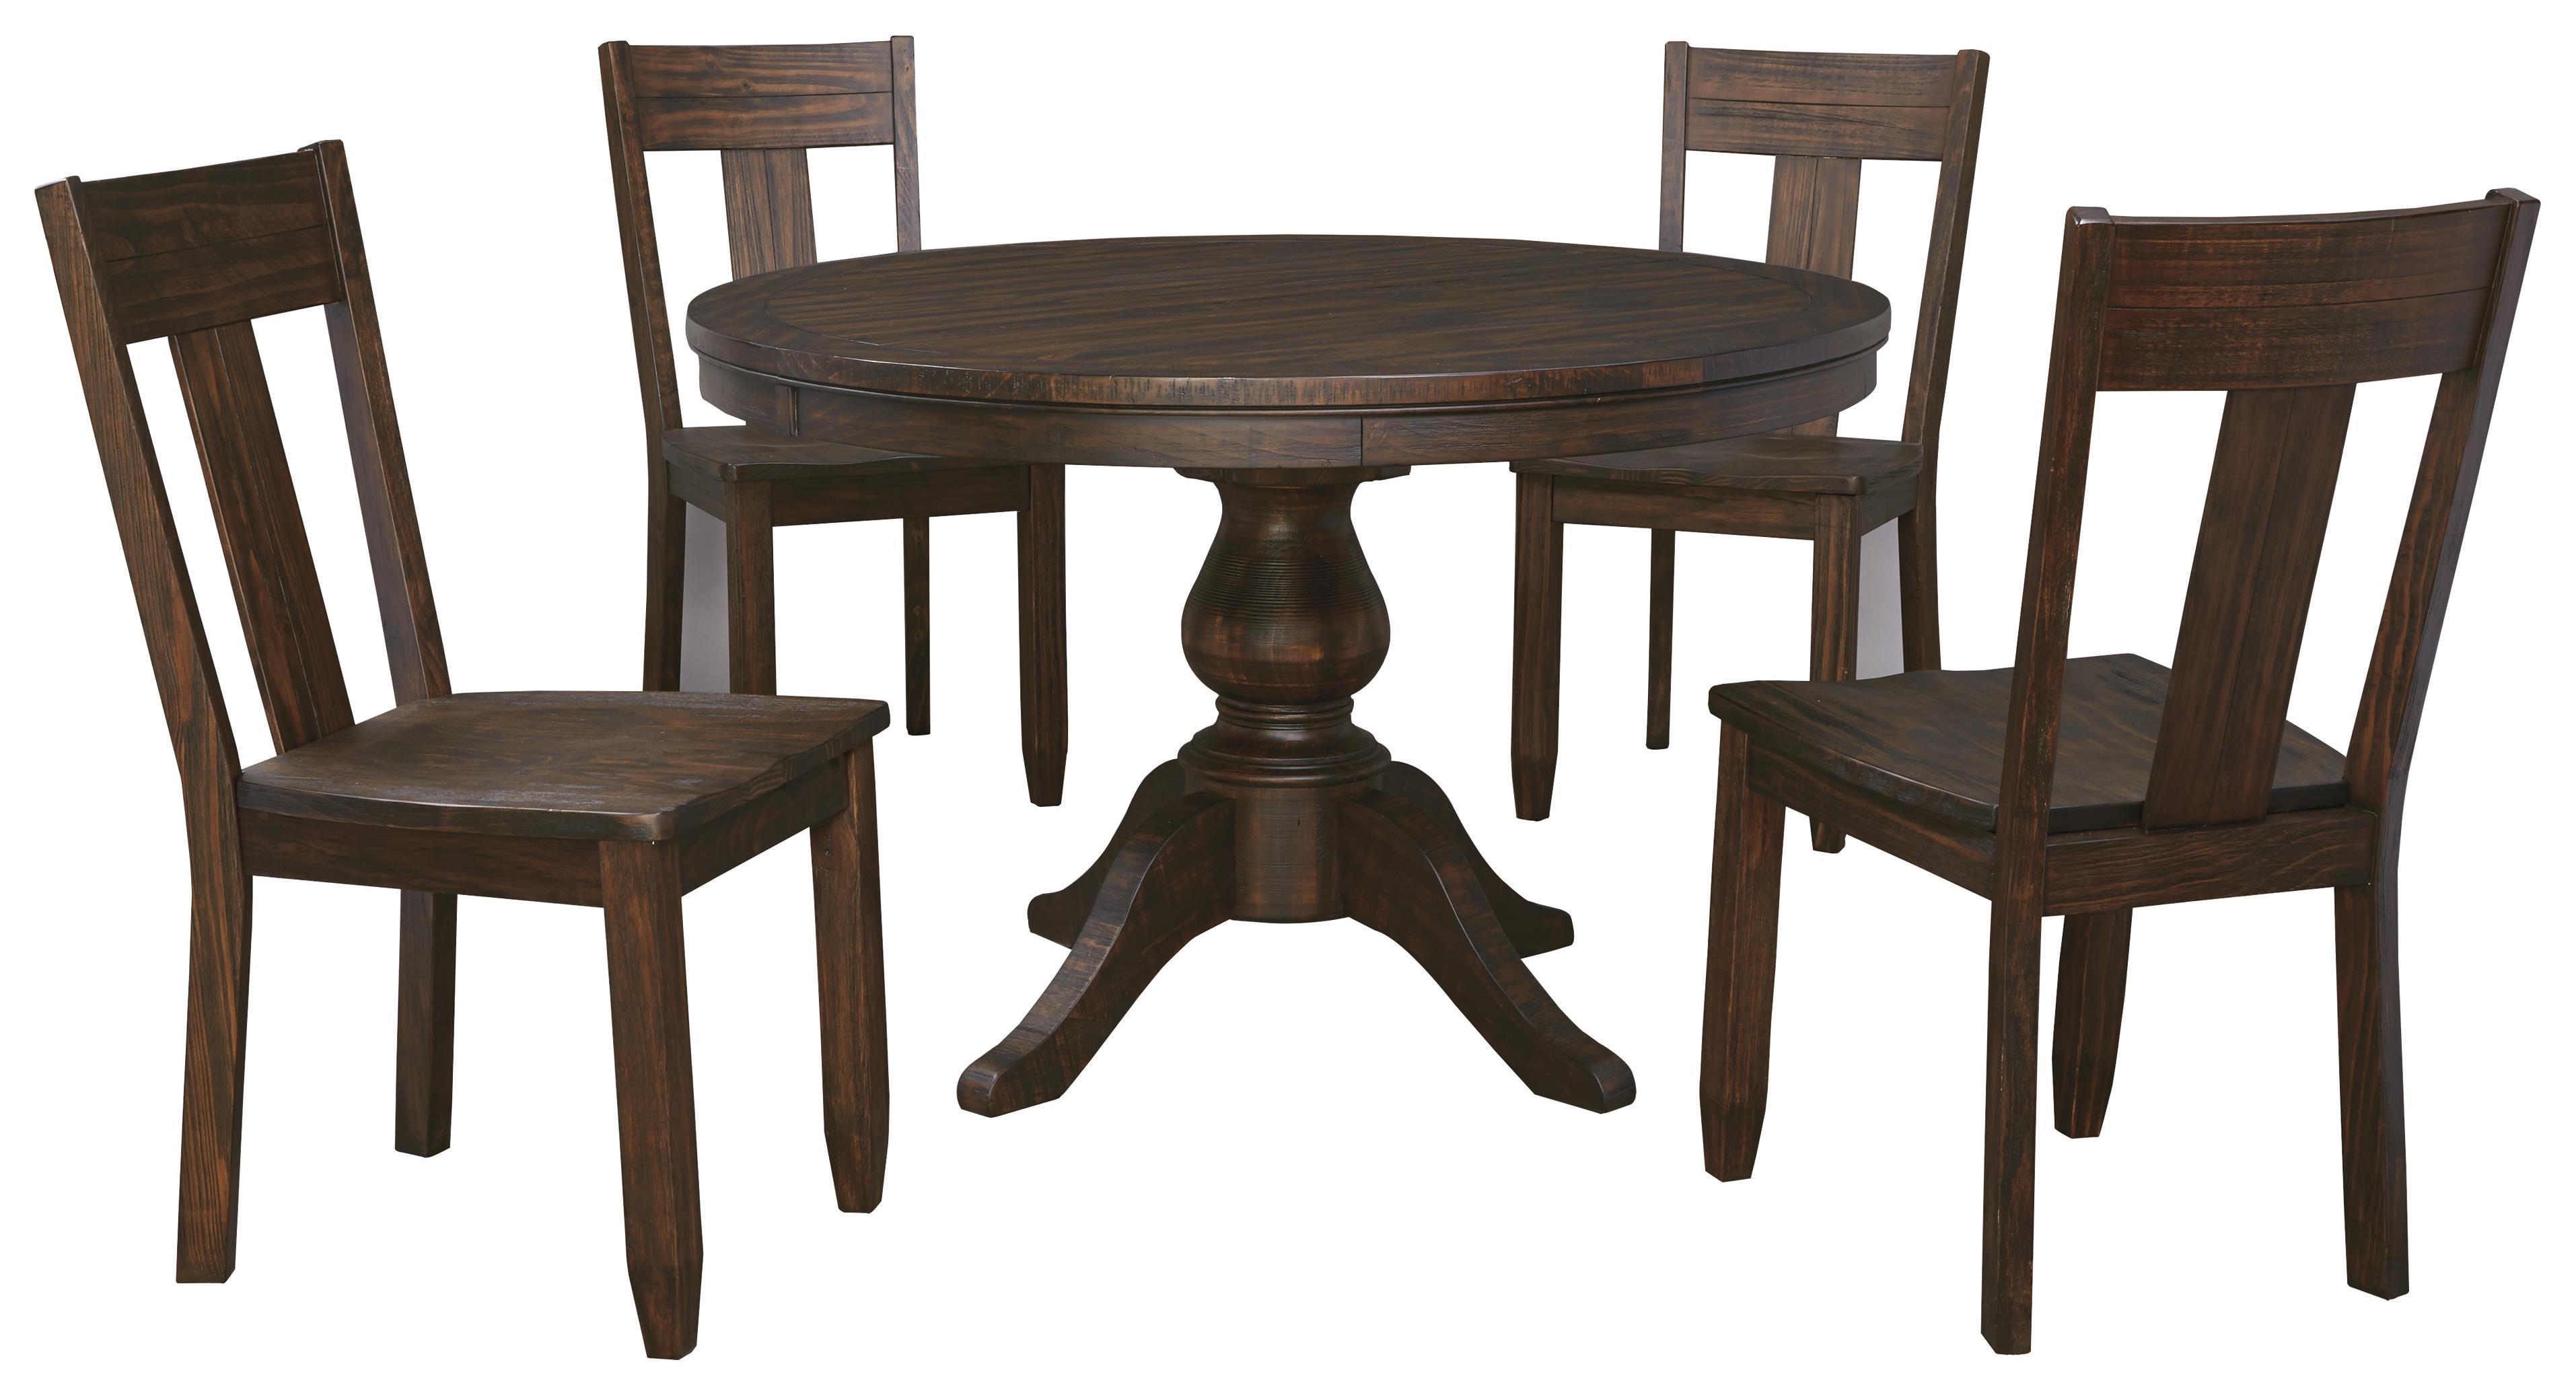 item kitchen table chairs Signature Design by Ashley Trudell 5 Piece Round Dining Table Set Item Number